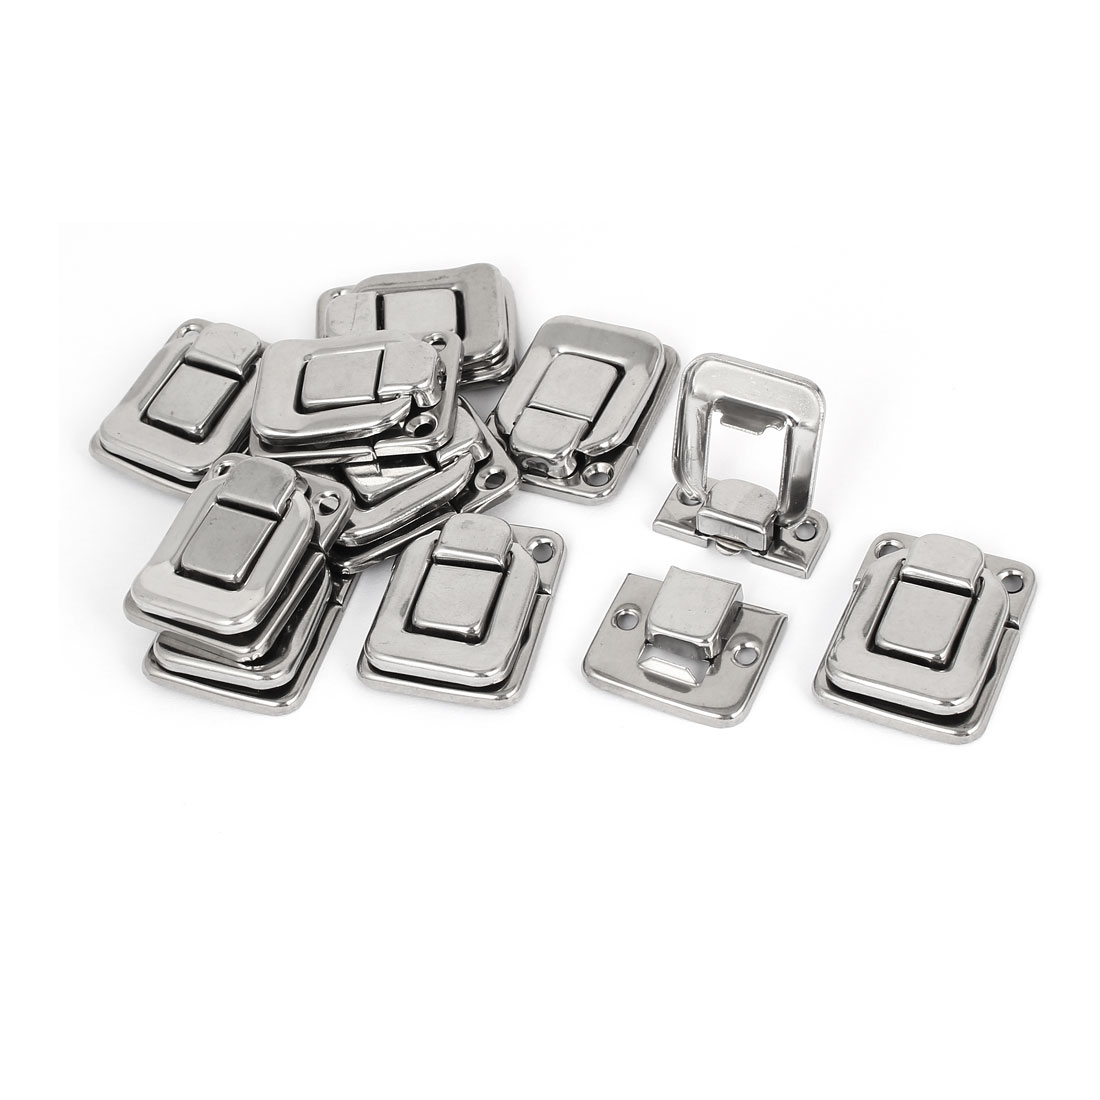 Toolbox Stainless Steel Box Toggle Latch Hasp Silver Tone 38mm Length 10pcs